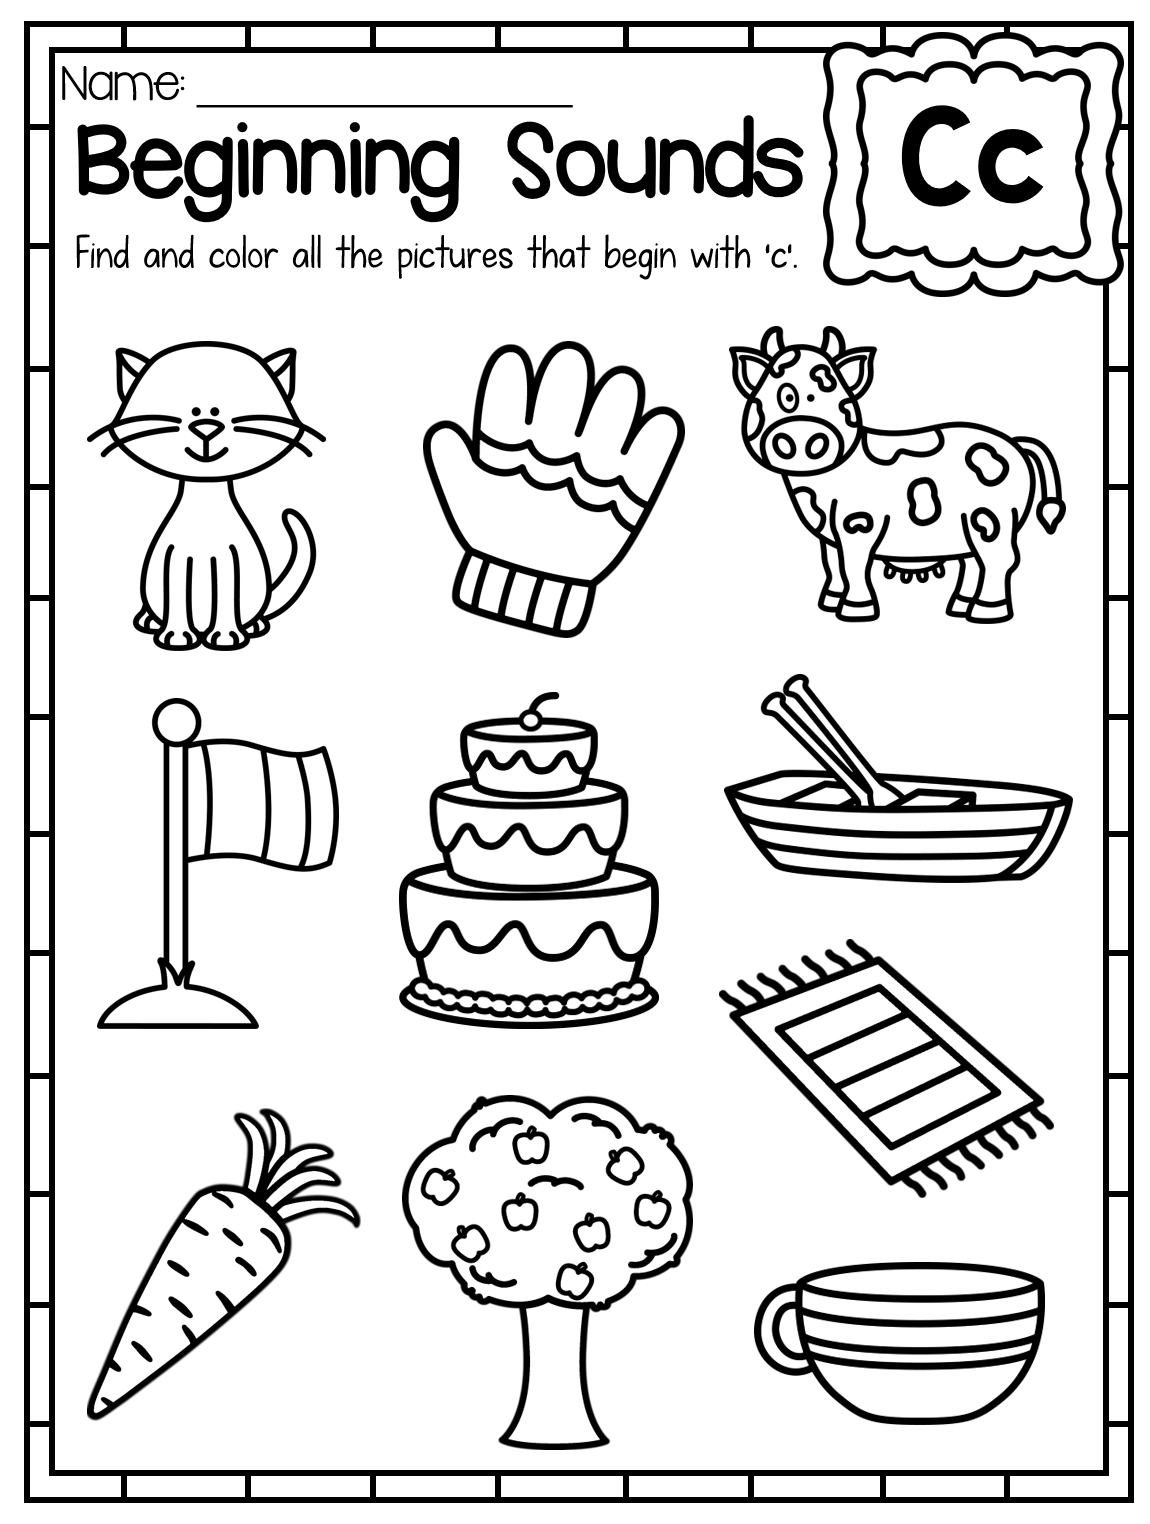 Worksheet Beginning Sound Worksheet Grass Fedjp Worksheet Study Site